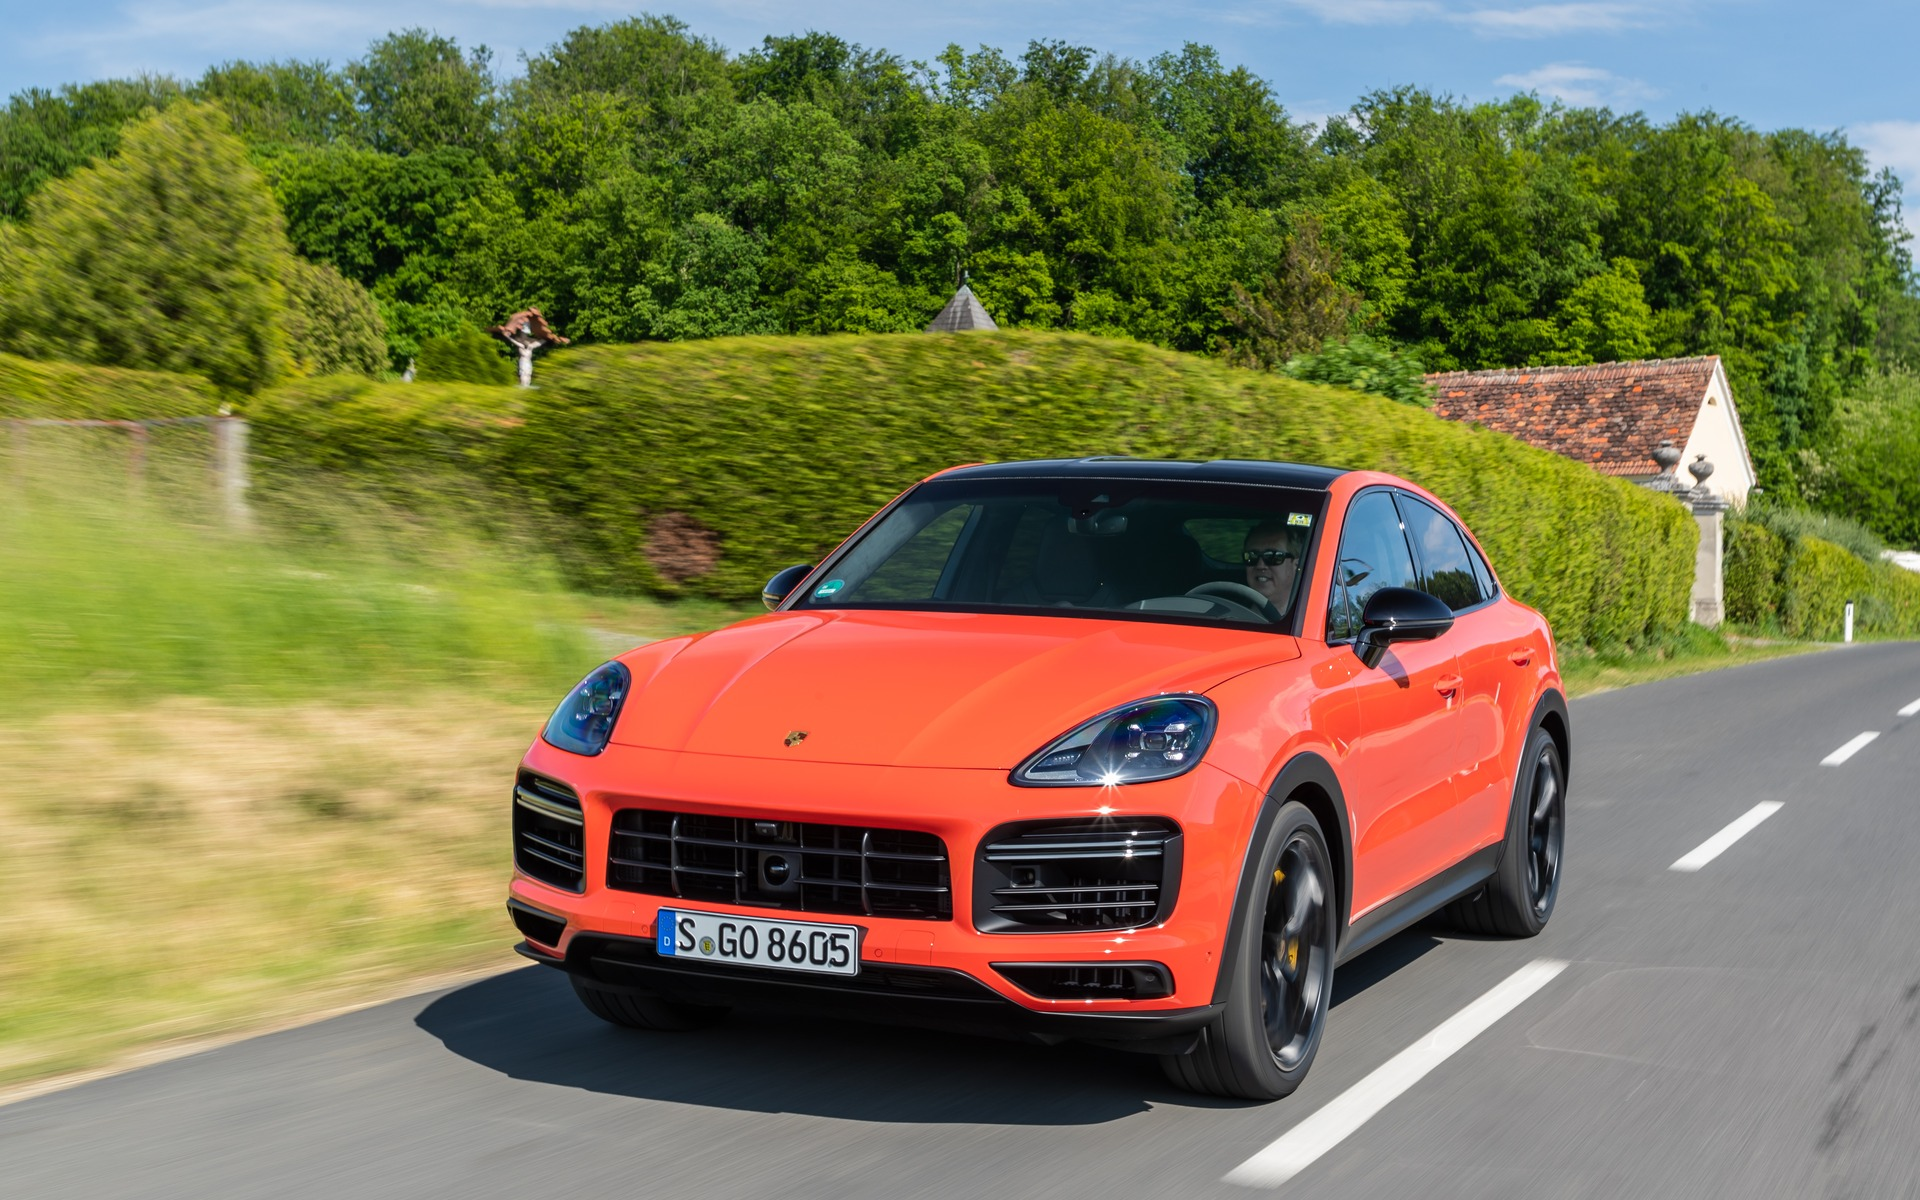 2020 Porsche Cayenne Coupe: Sportier Looks and Dynamics